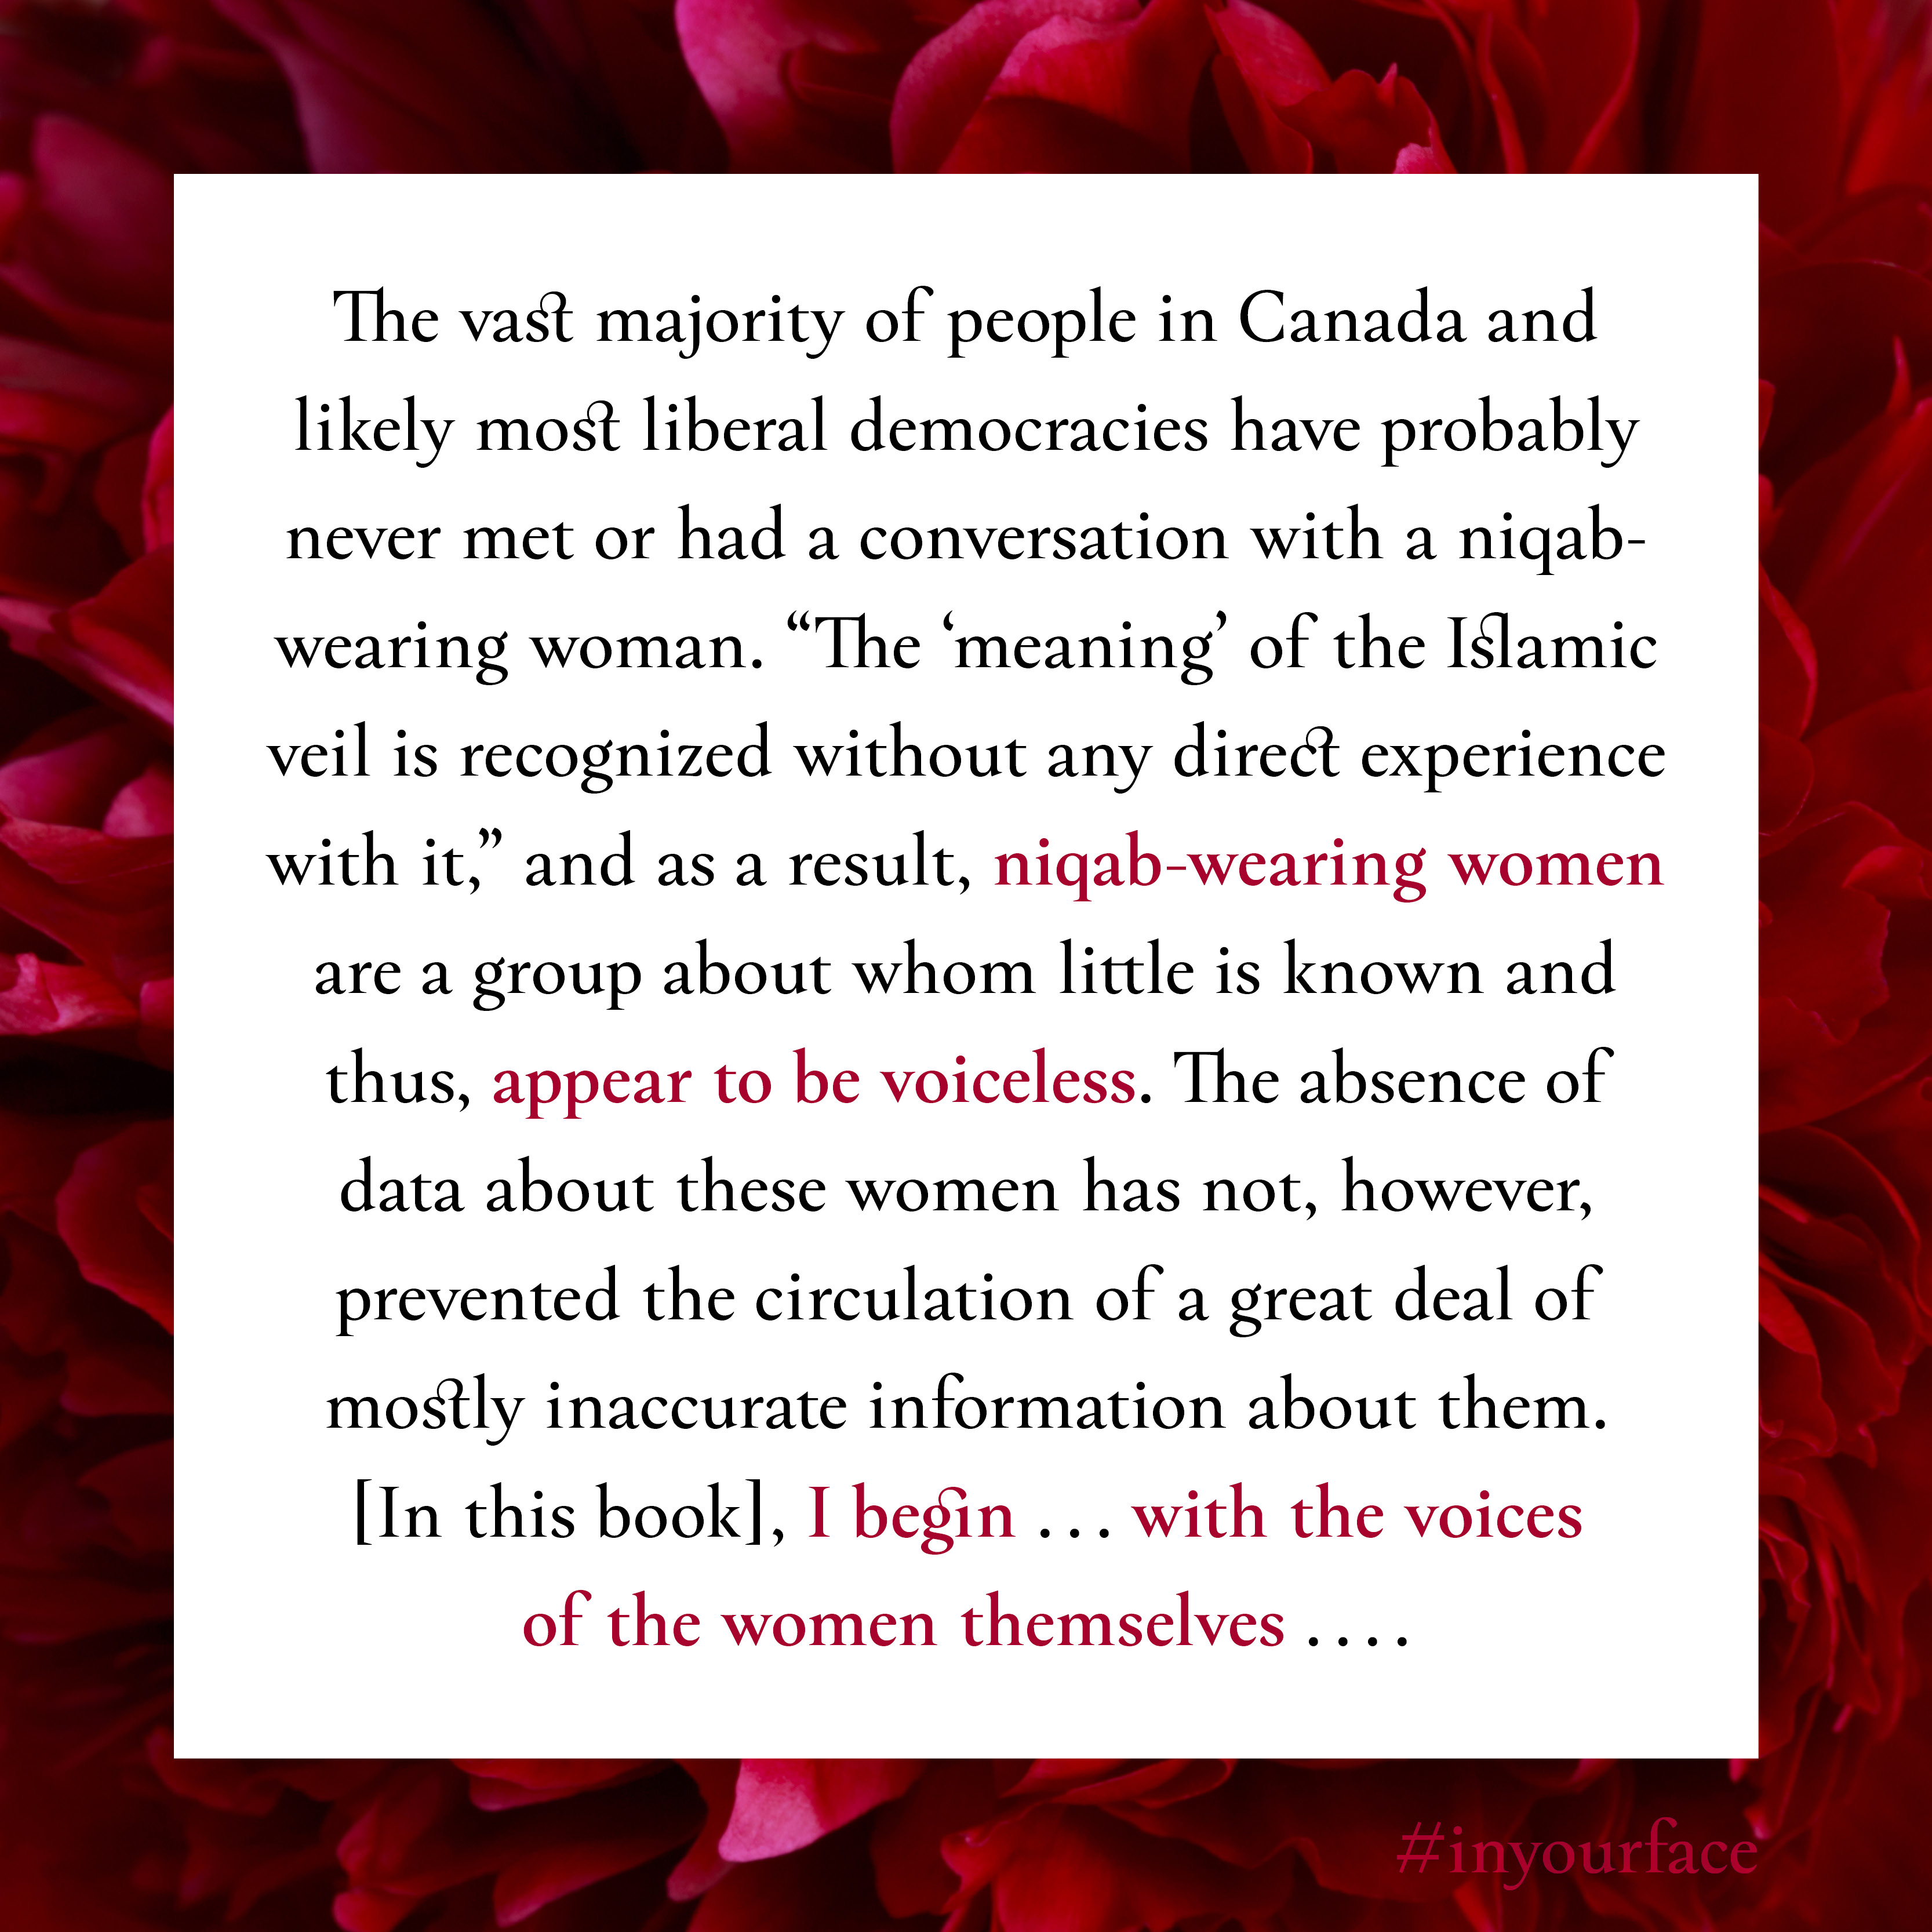 """Excerpt from In Your Face by Natasha Bakht. It reads: """"The vast majority of people in Canada and likely most liberal democracies have probably never met or had a conversation with a niqab-wearing woman. """"The 'meaning' of the Islamic veil is recognized without any direct experience with it,"""" and as a result, niqab-wearing women are a group about whom little is known and thus, appear to be voiceless. The absence of data about these women has not, however, prevented the circulation of a great deal of mostly inaccurate information about them. [In this book], I begin ... with the voices of the women themselves ...."""""""